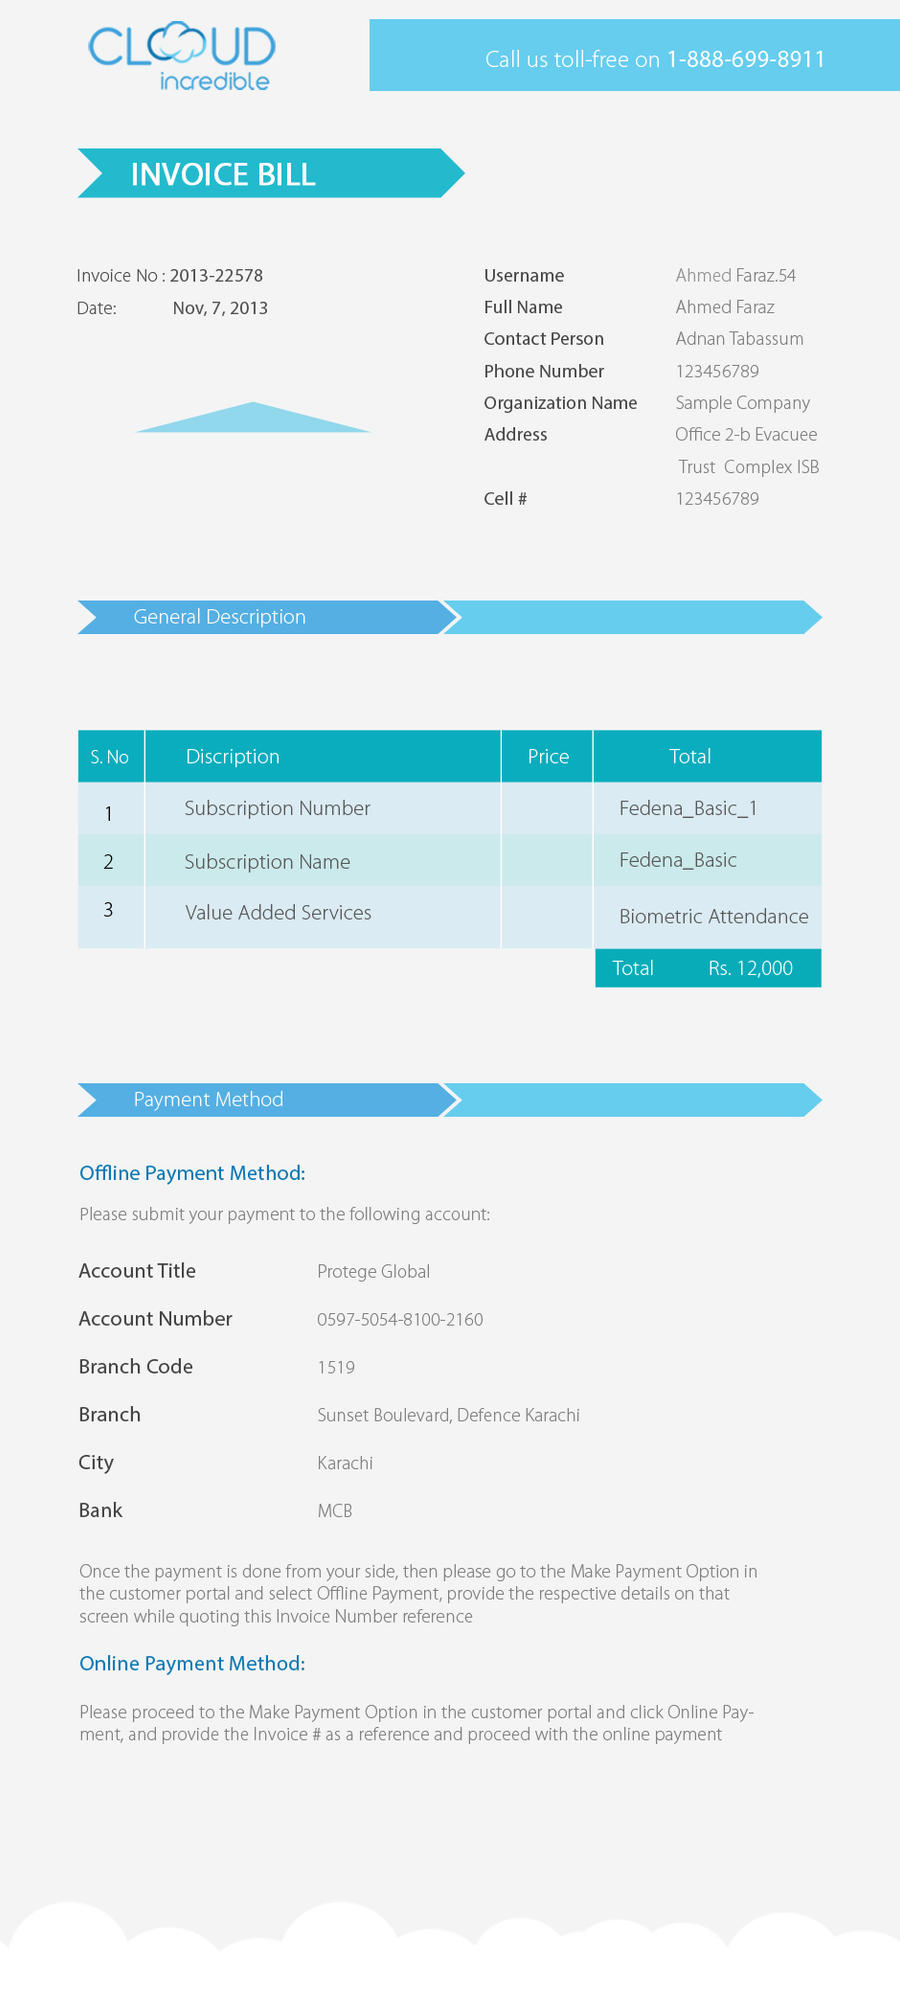 invoice template design by fahad on invoice template design by fahad356 invoice template design by fahad356